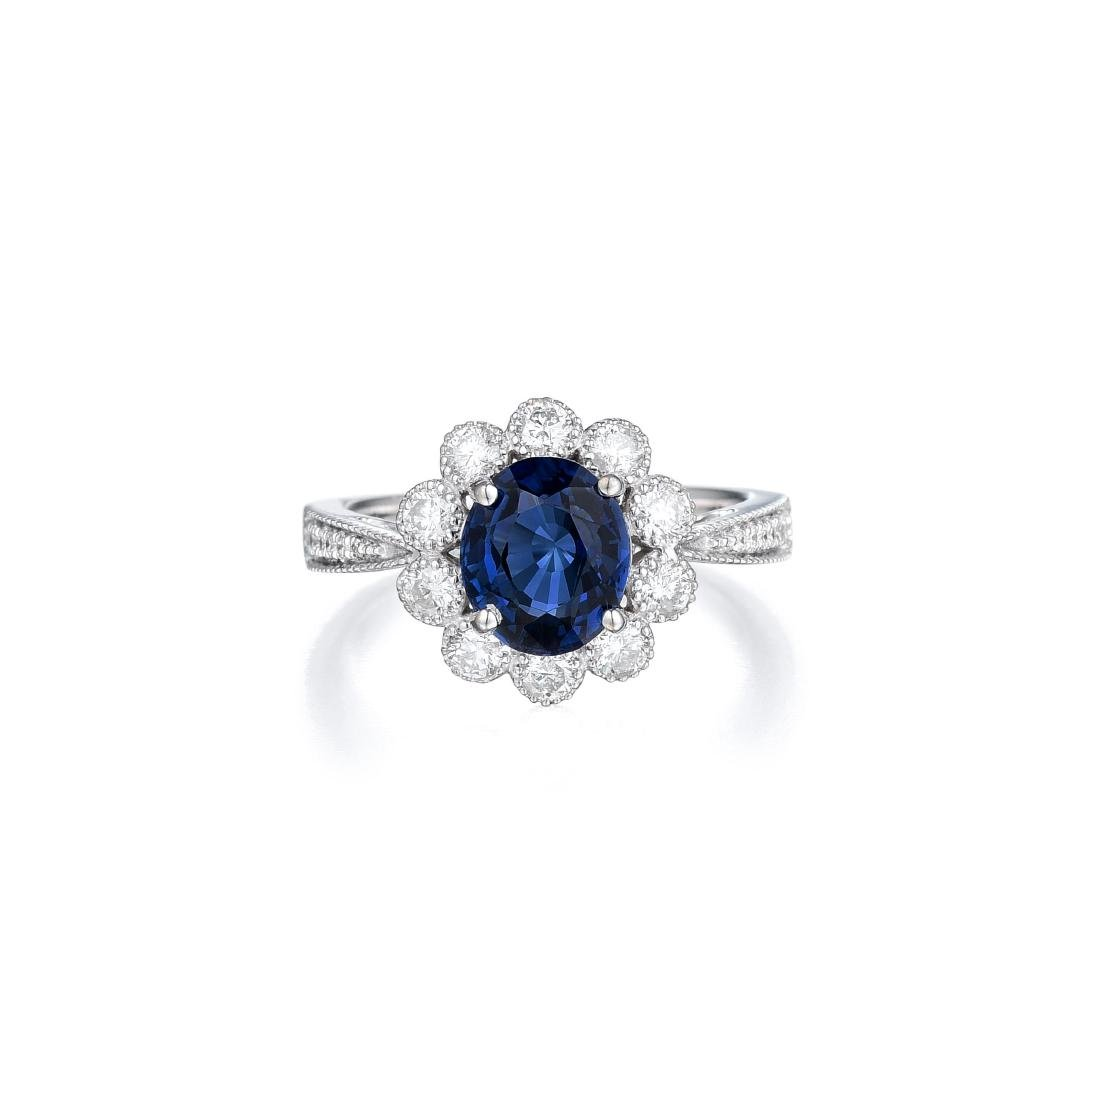 A 14K White Gold Spinel and Diamond Ring